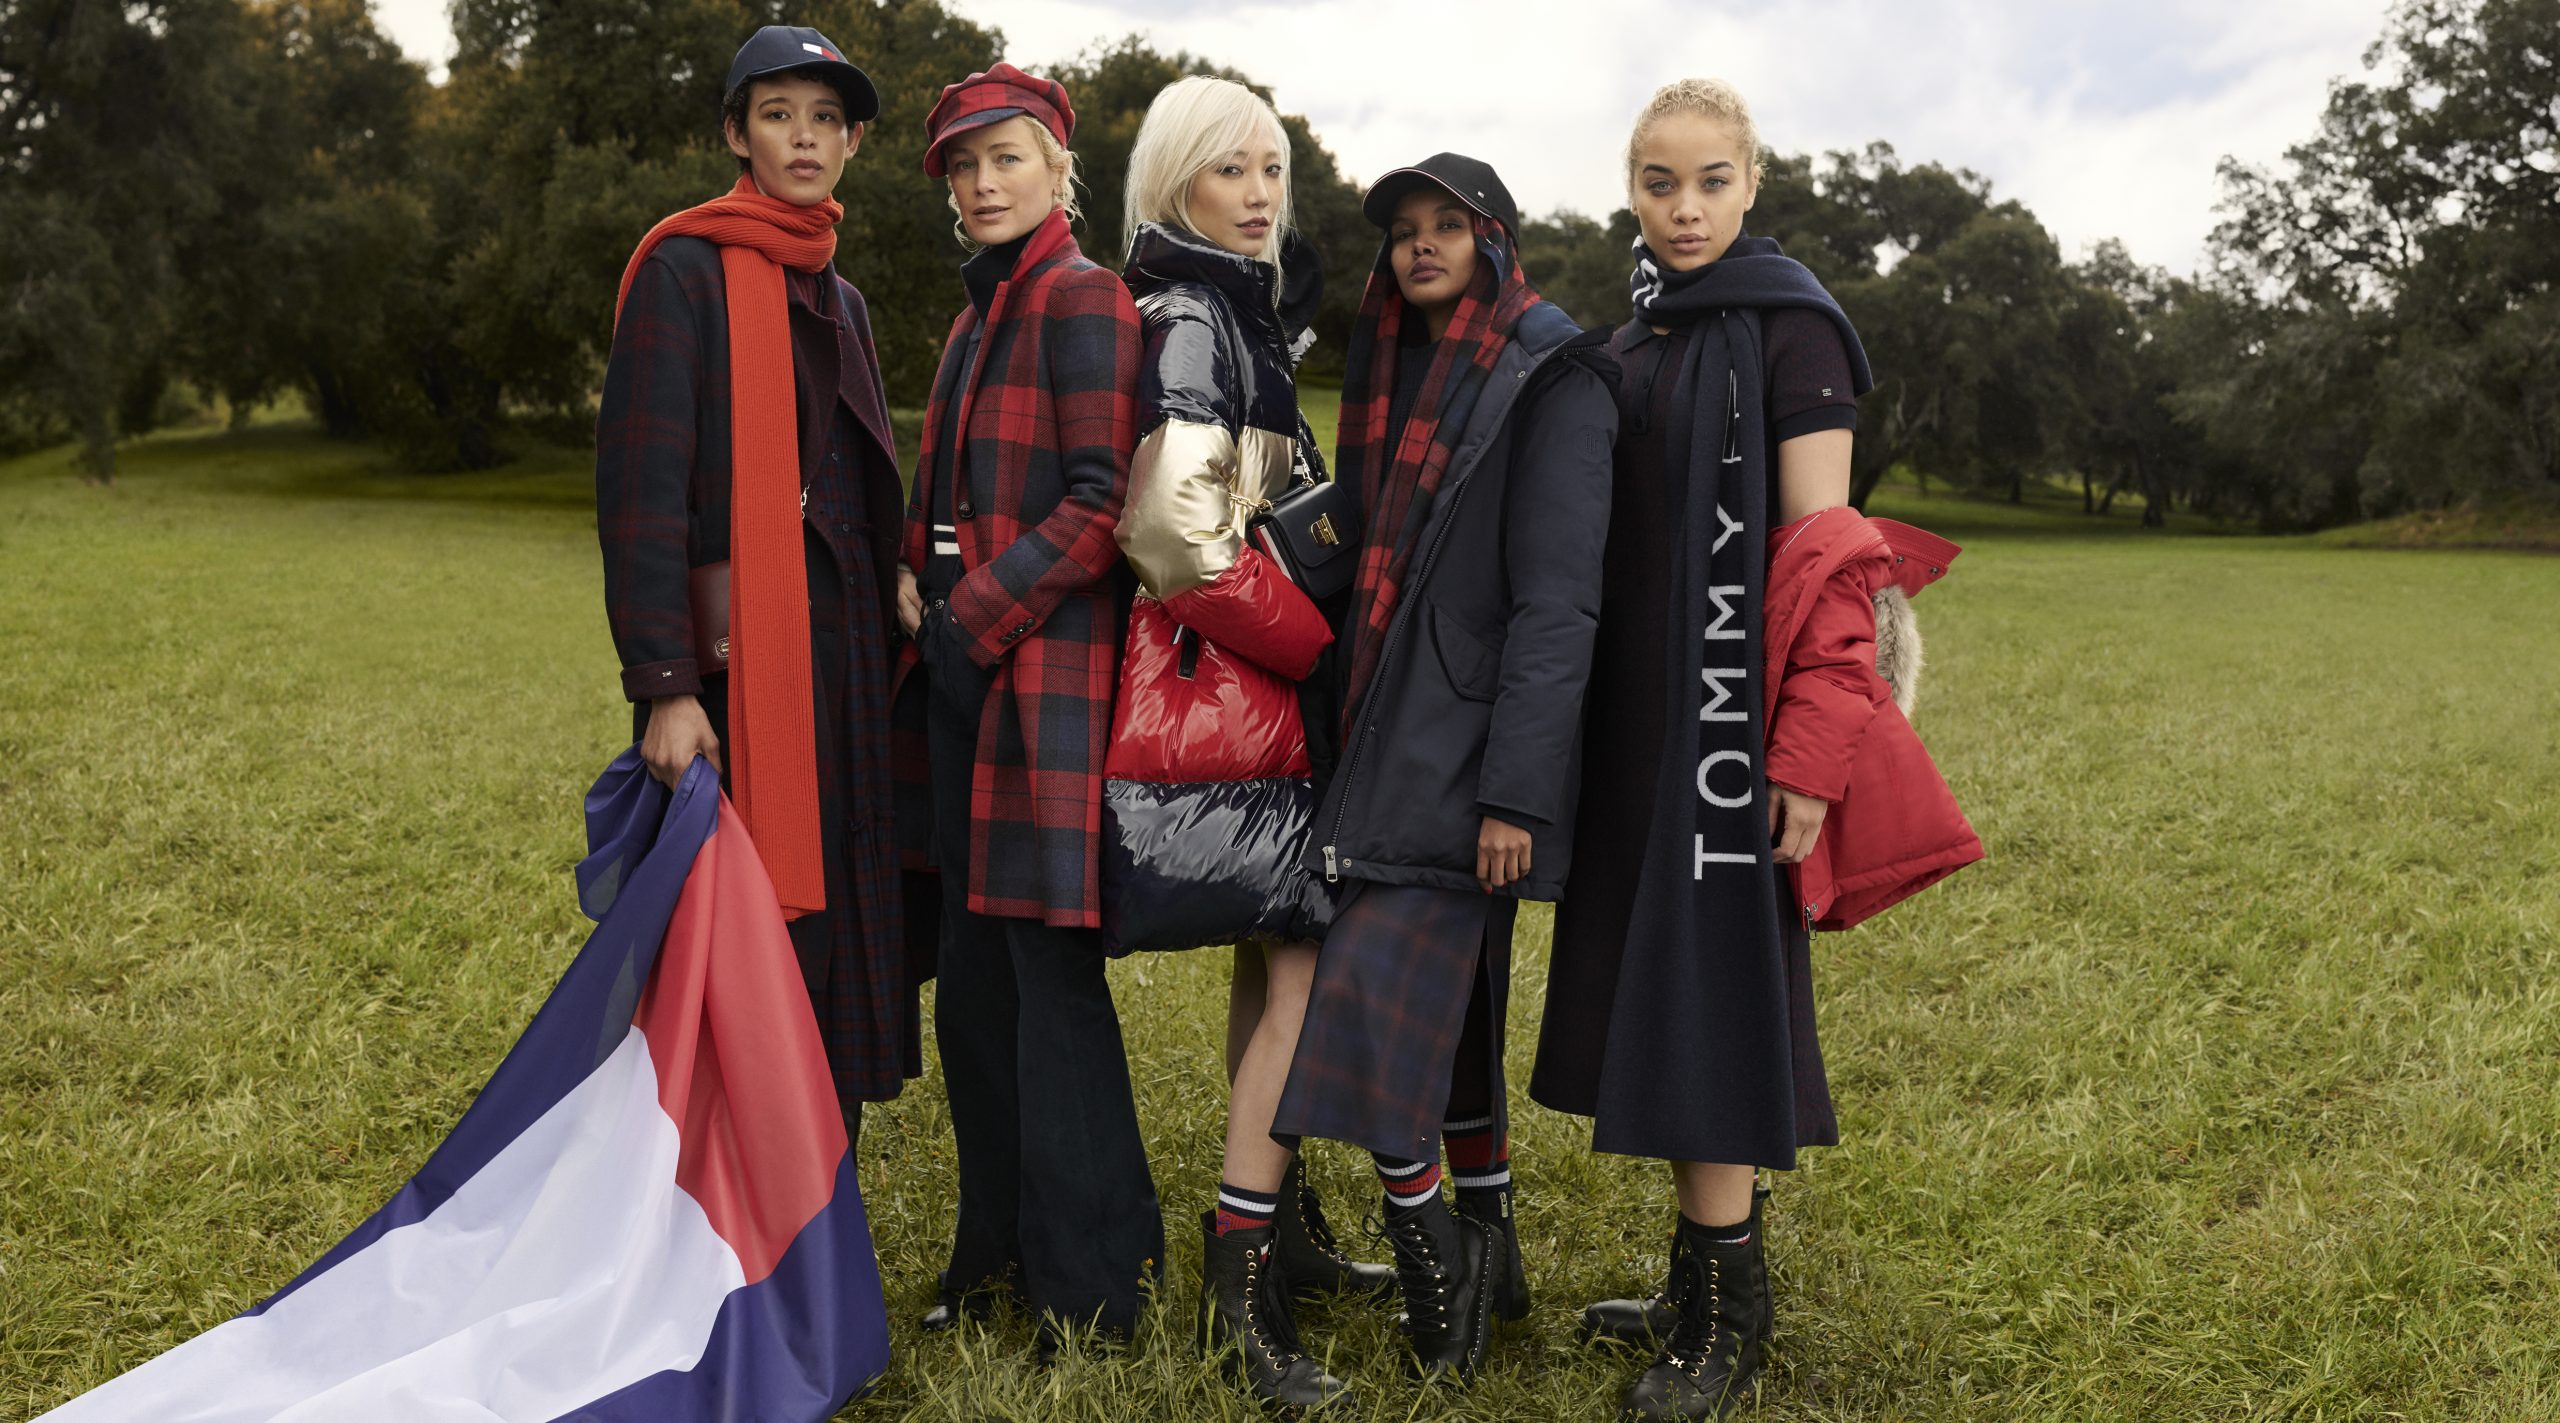 Tommy Hilfiger Fall 2020 Ad Campaign Film & Photos